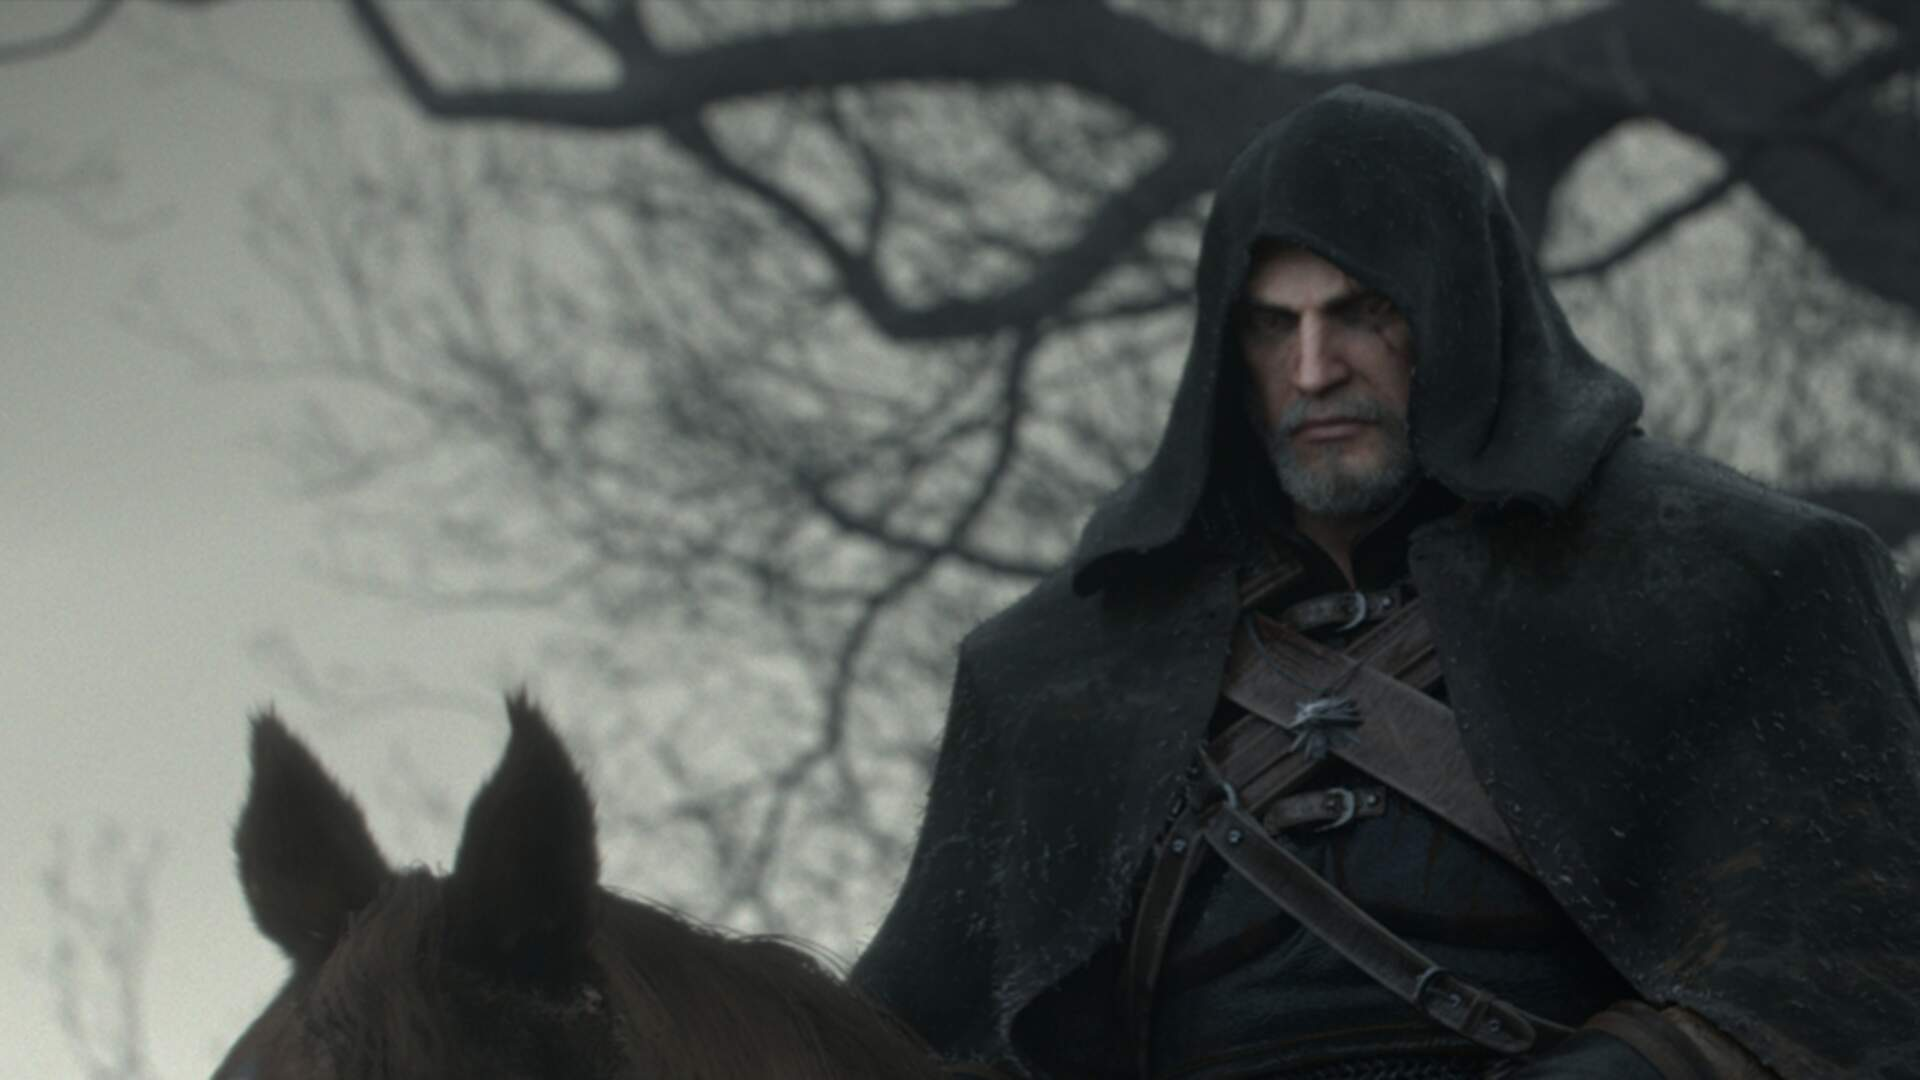 EGX: How The Witcher 3 Blends Complex Storytelling with an Immersive Open World